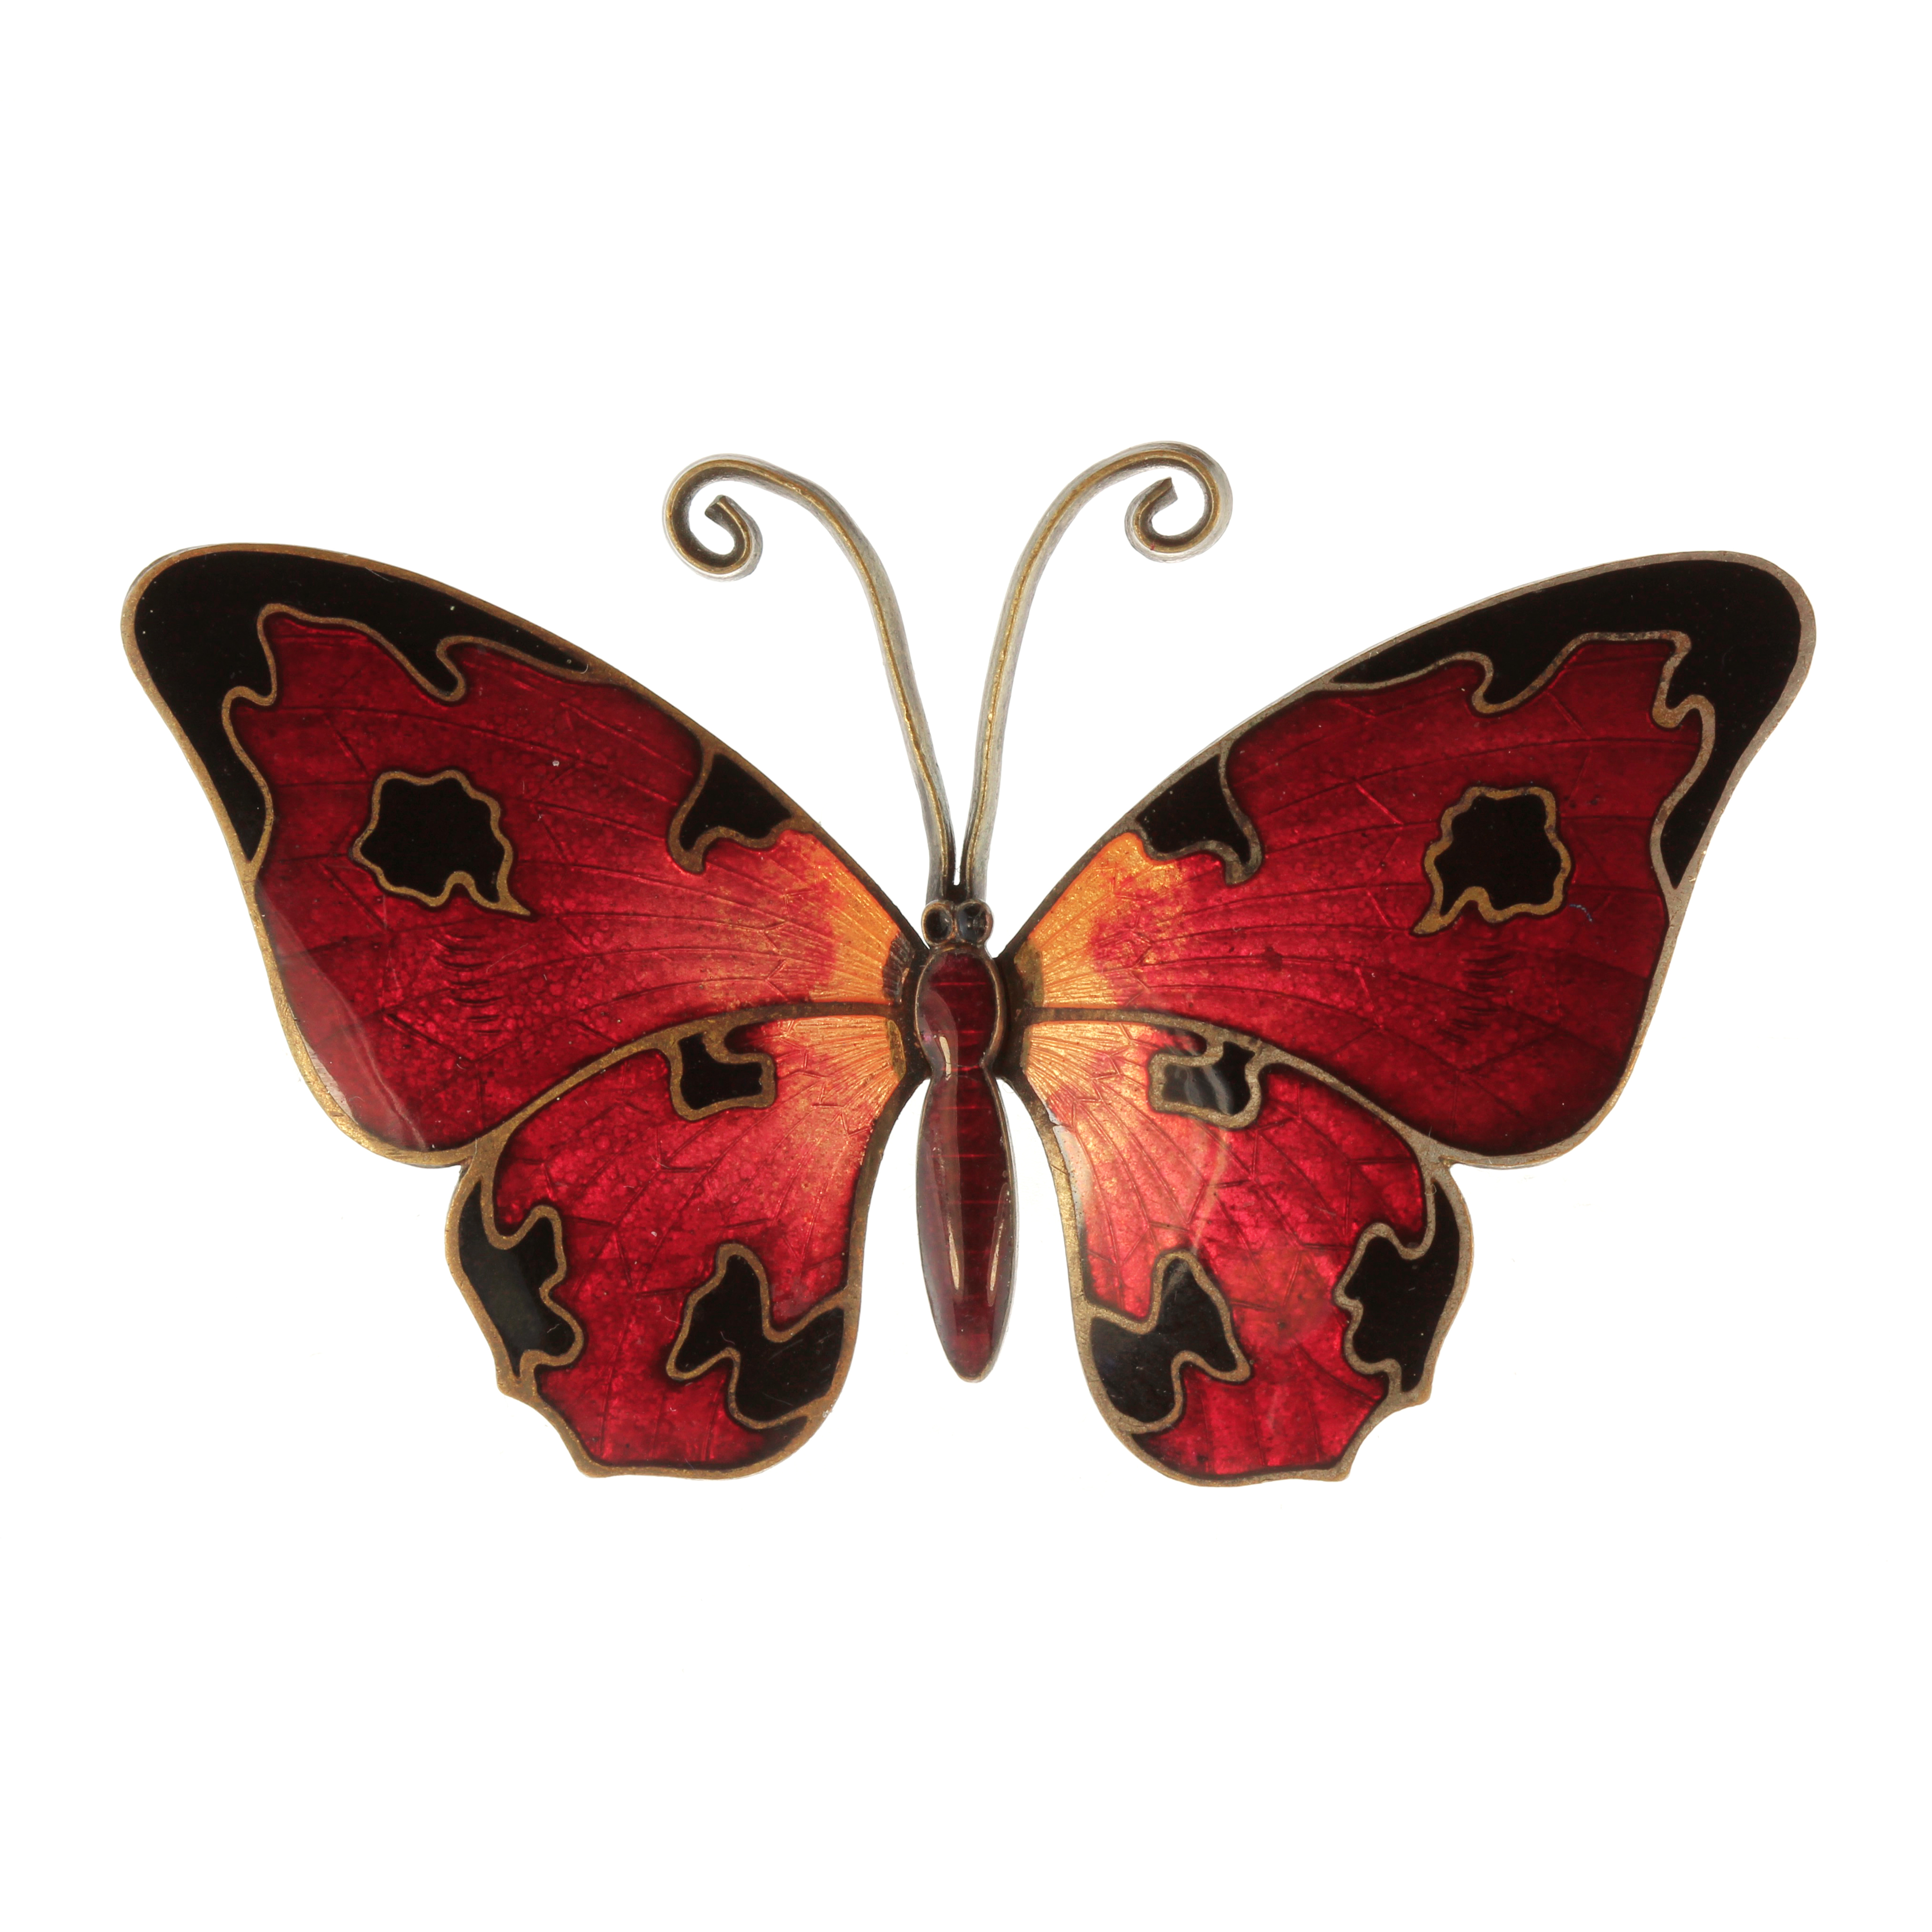 Los 21 - An antique enamel butterfly brooch the body and wings decorated in various shades of red and black